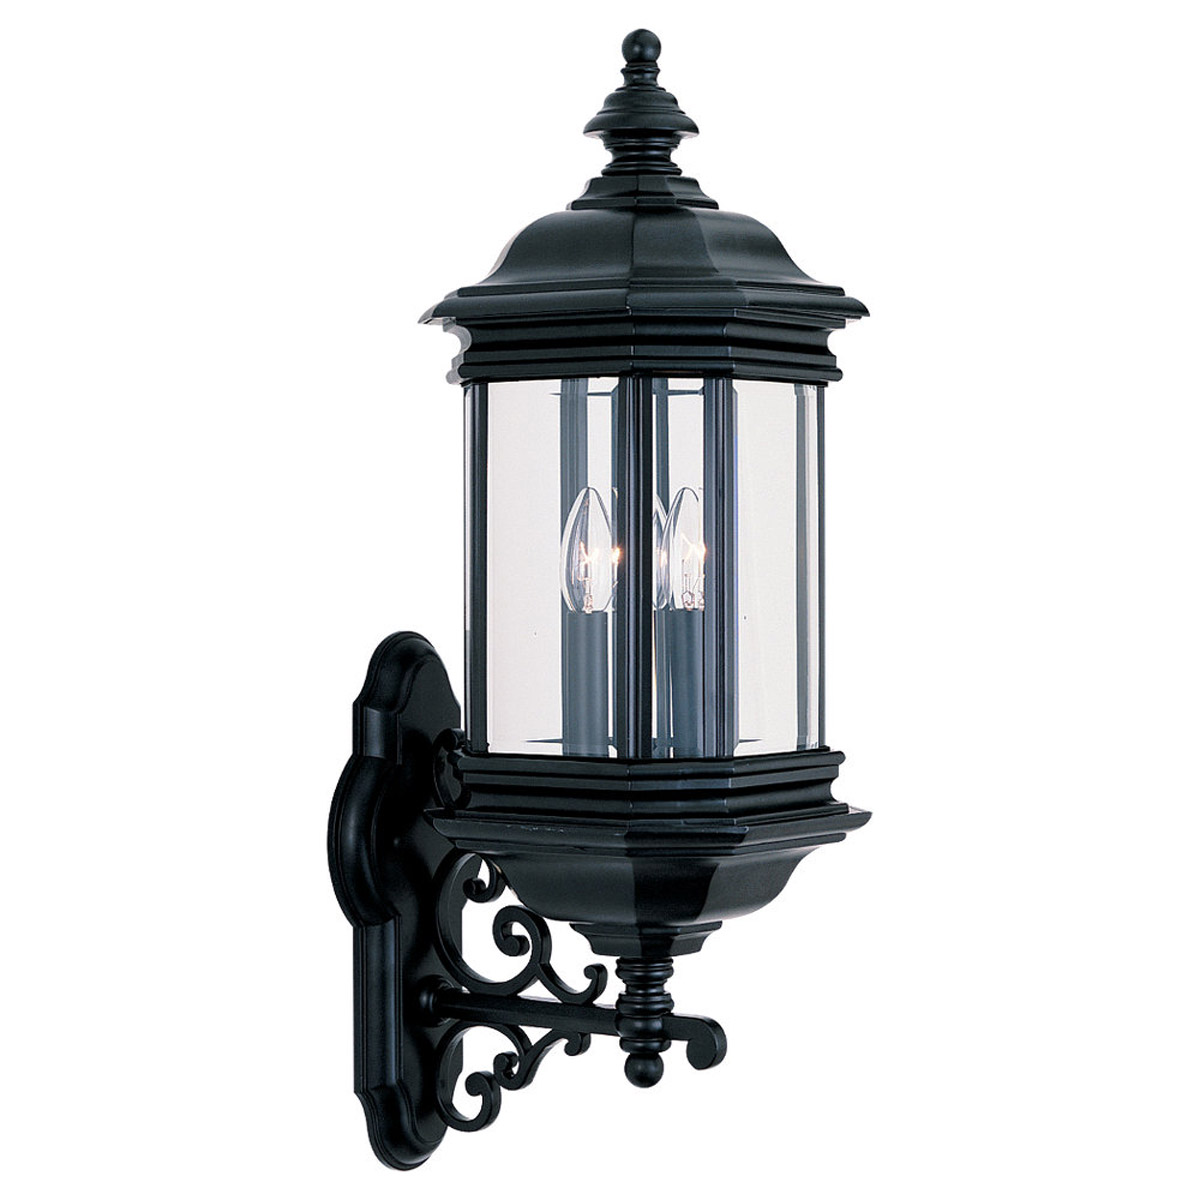 Sea Gull Lighting Hill Gate 3 Light Outdoor Wall Lantern in Black 8839-12 photo